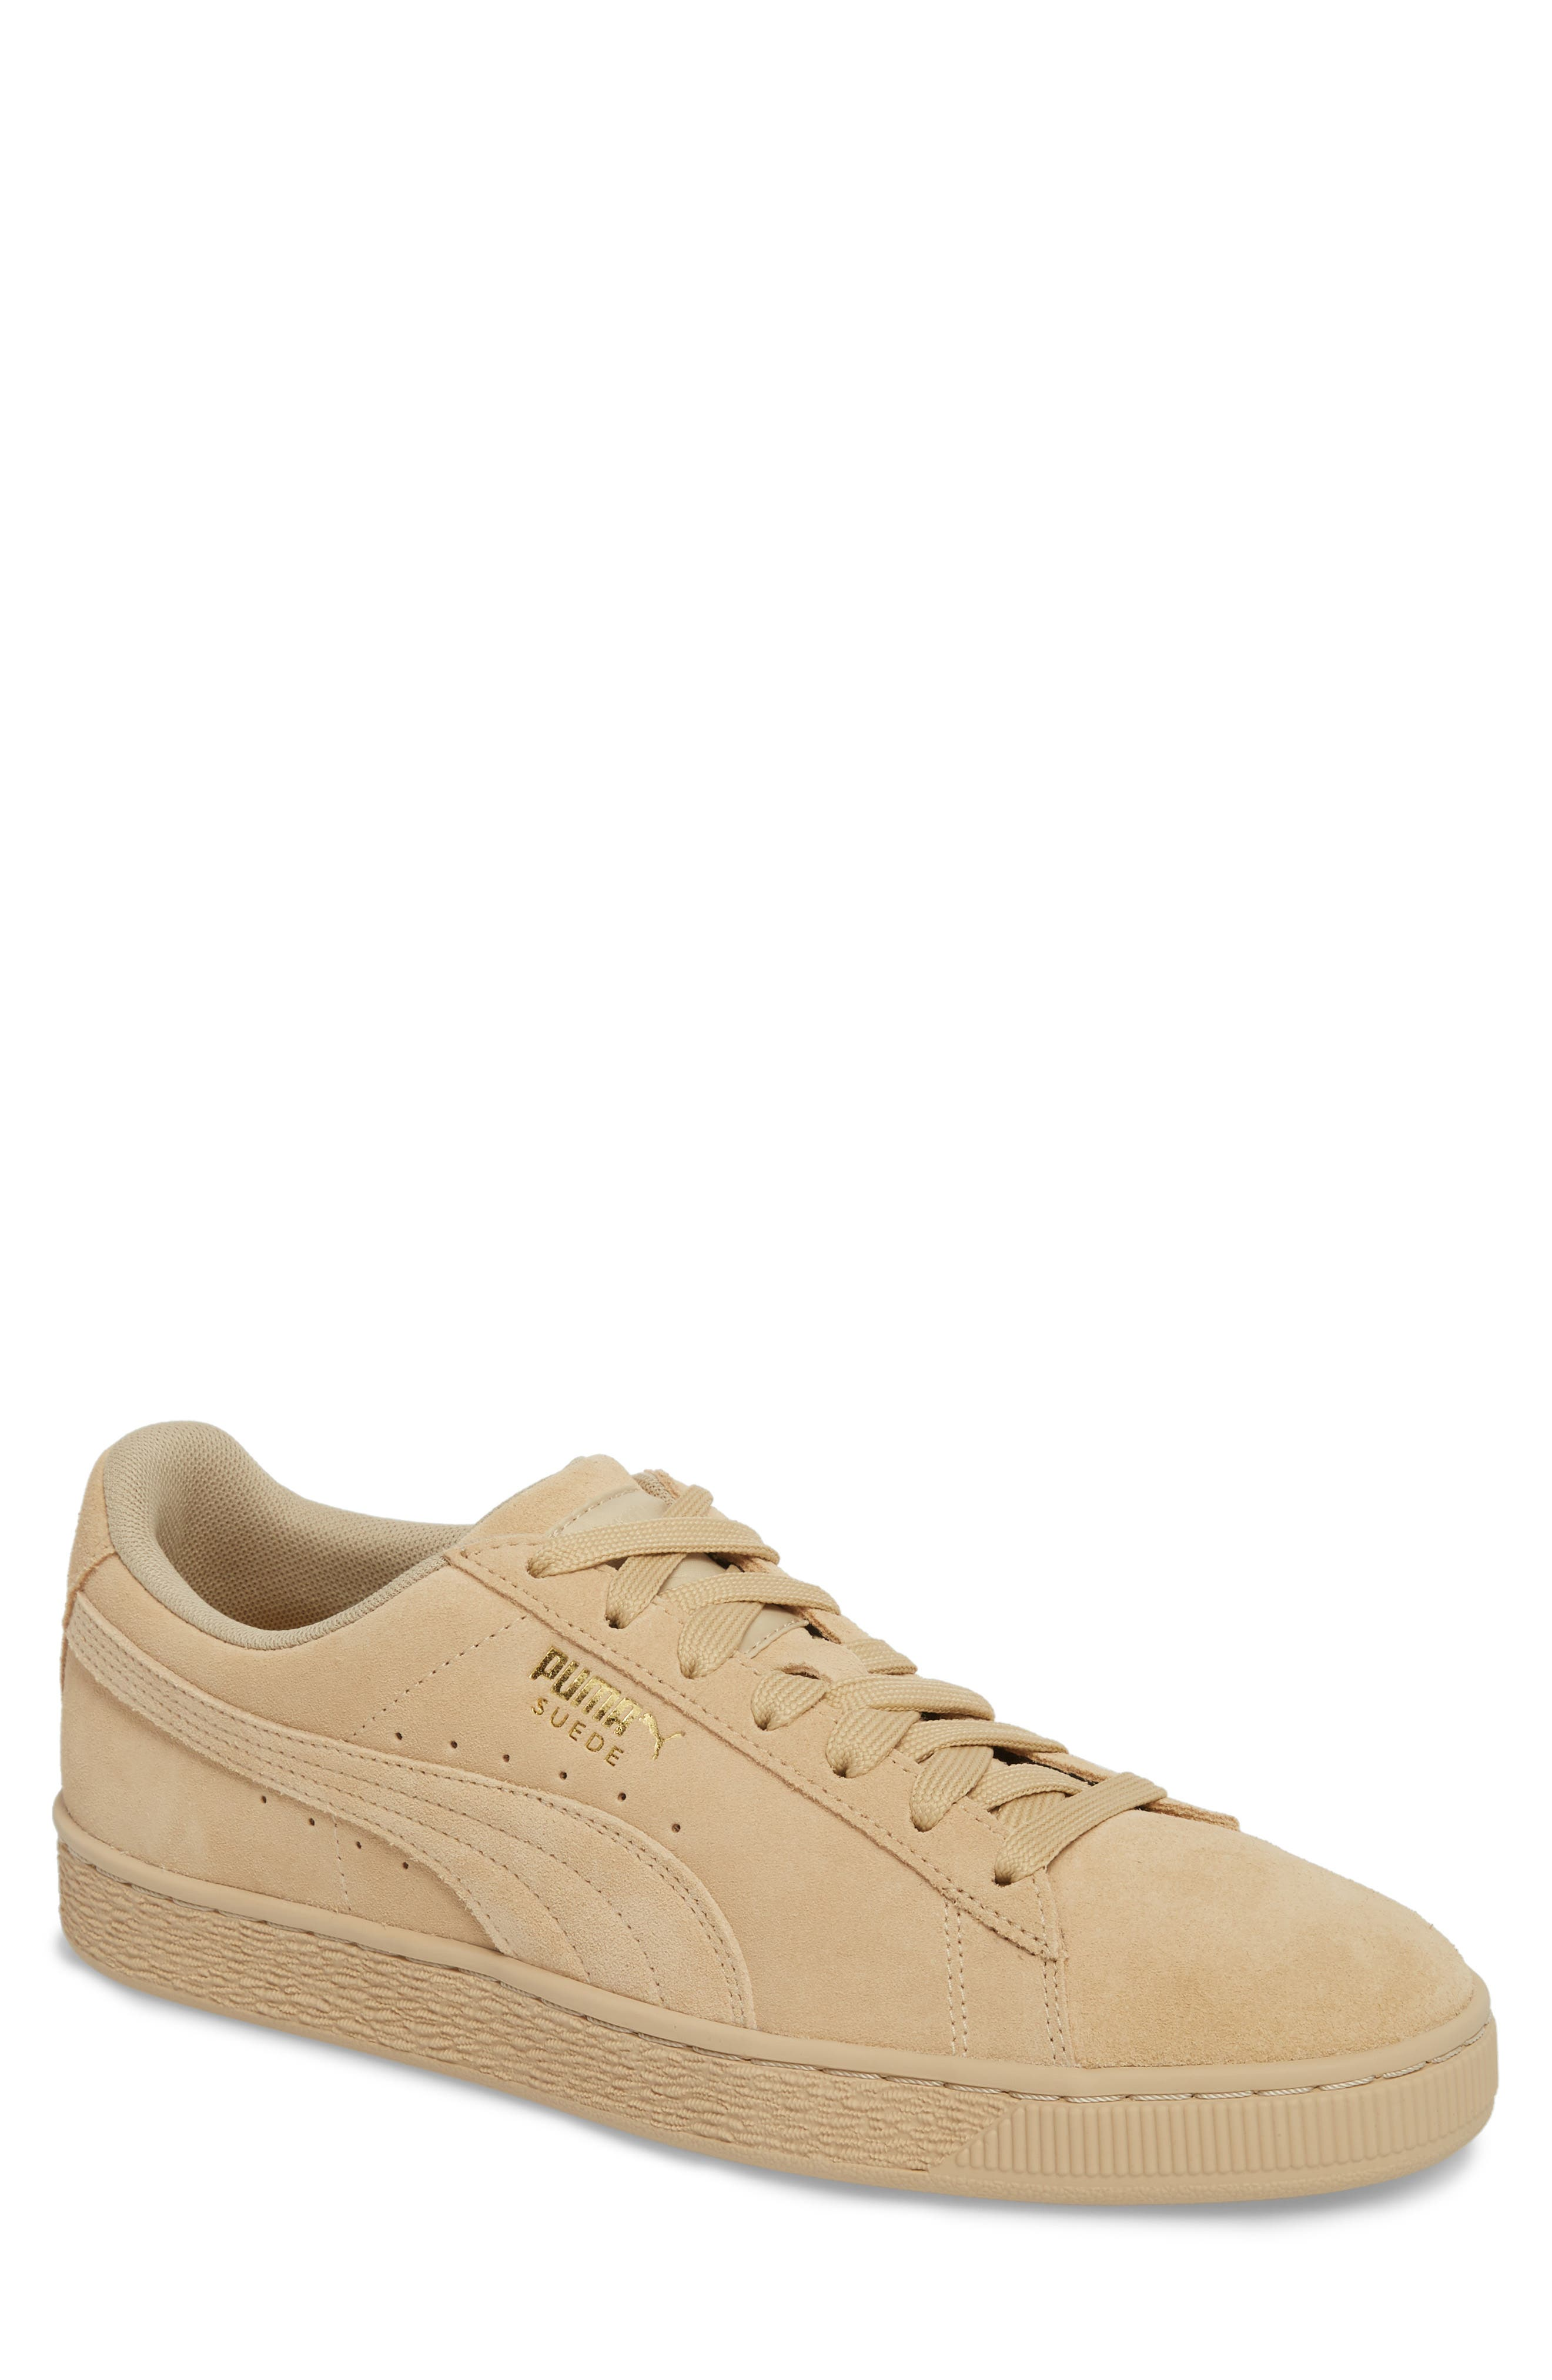 Suede Classic Tonal Sneaker,                         Main,                         color, Pebble Suede